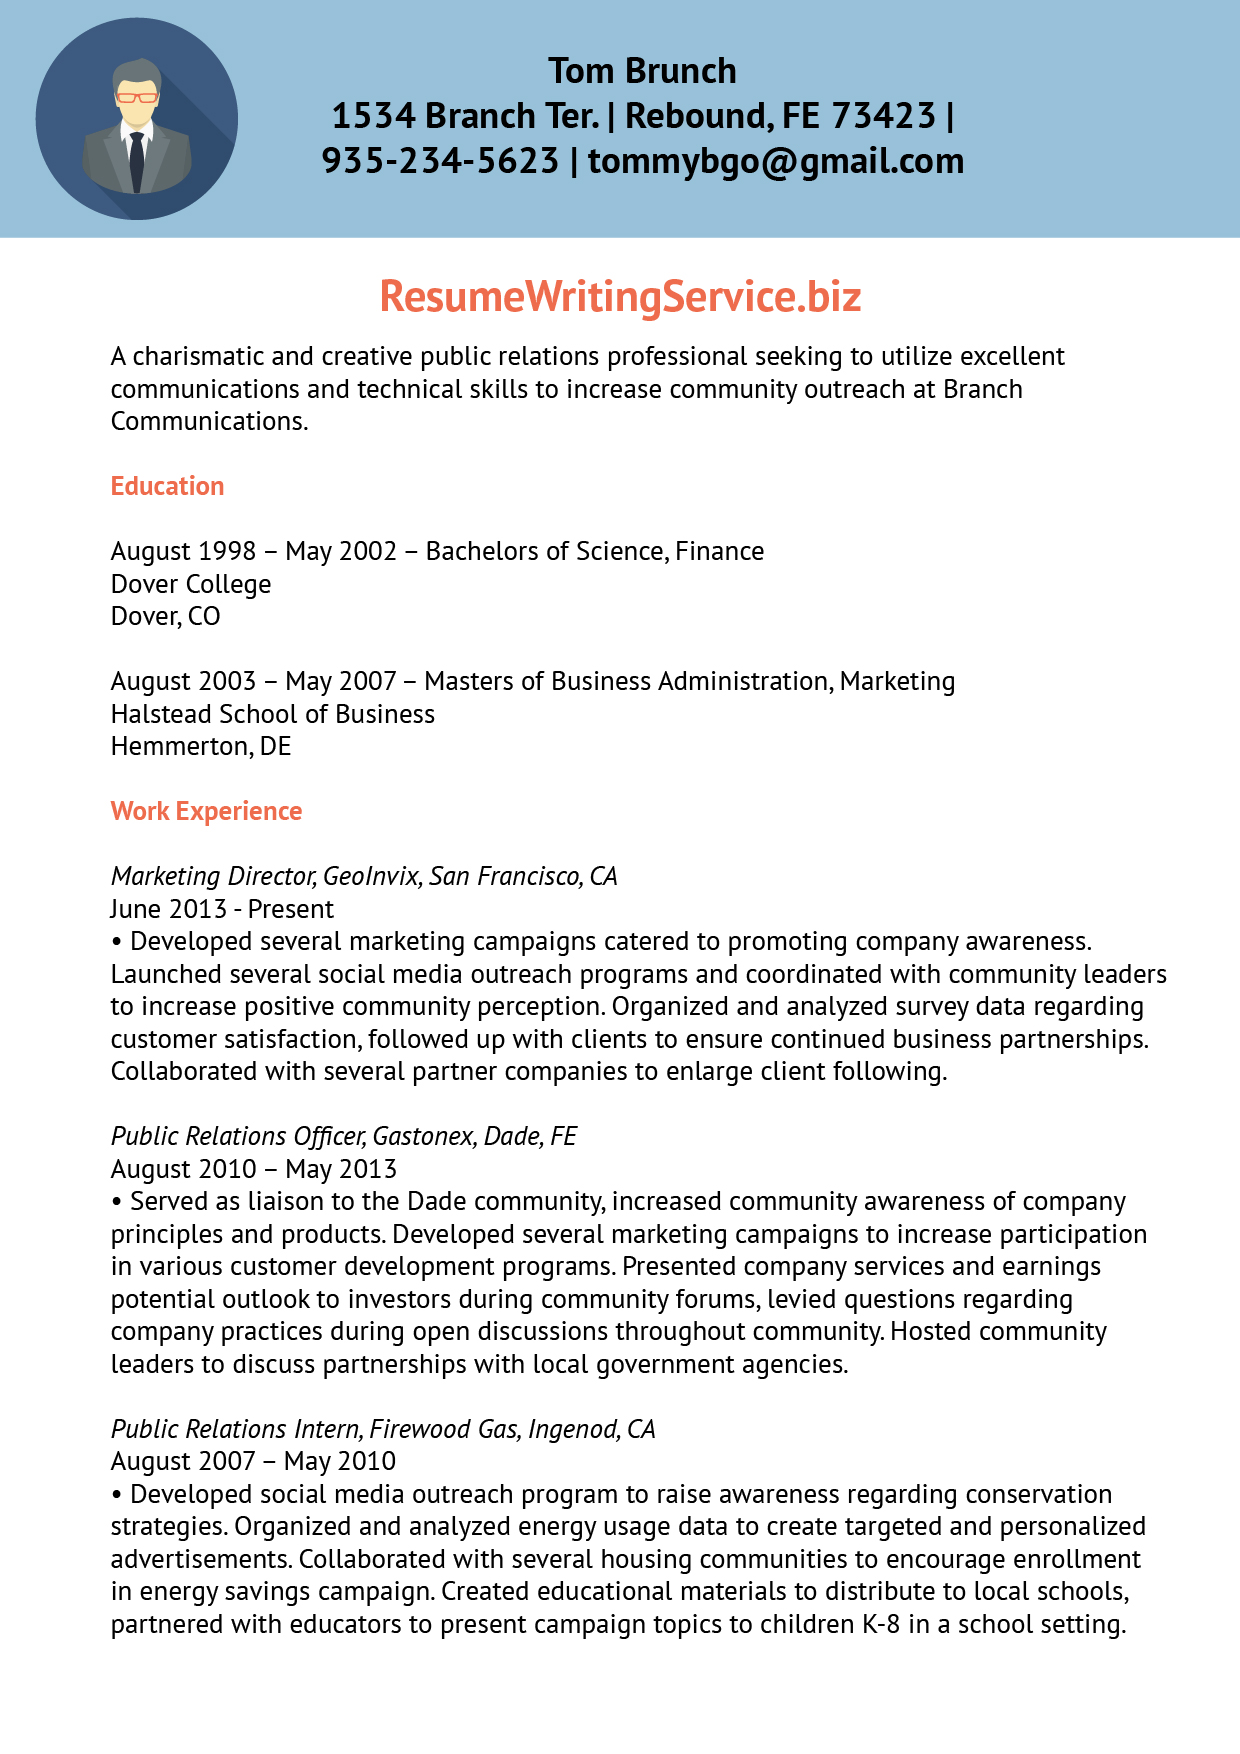 Public relations resume samples